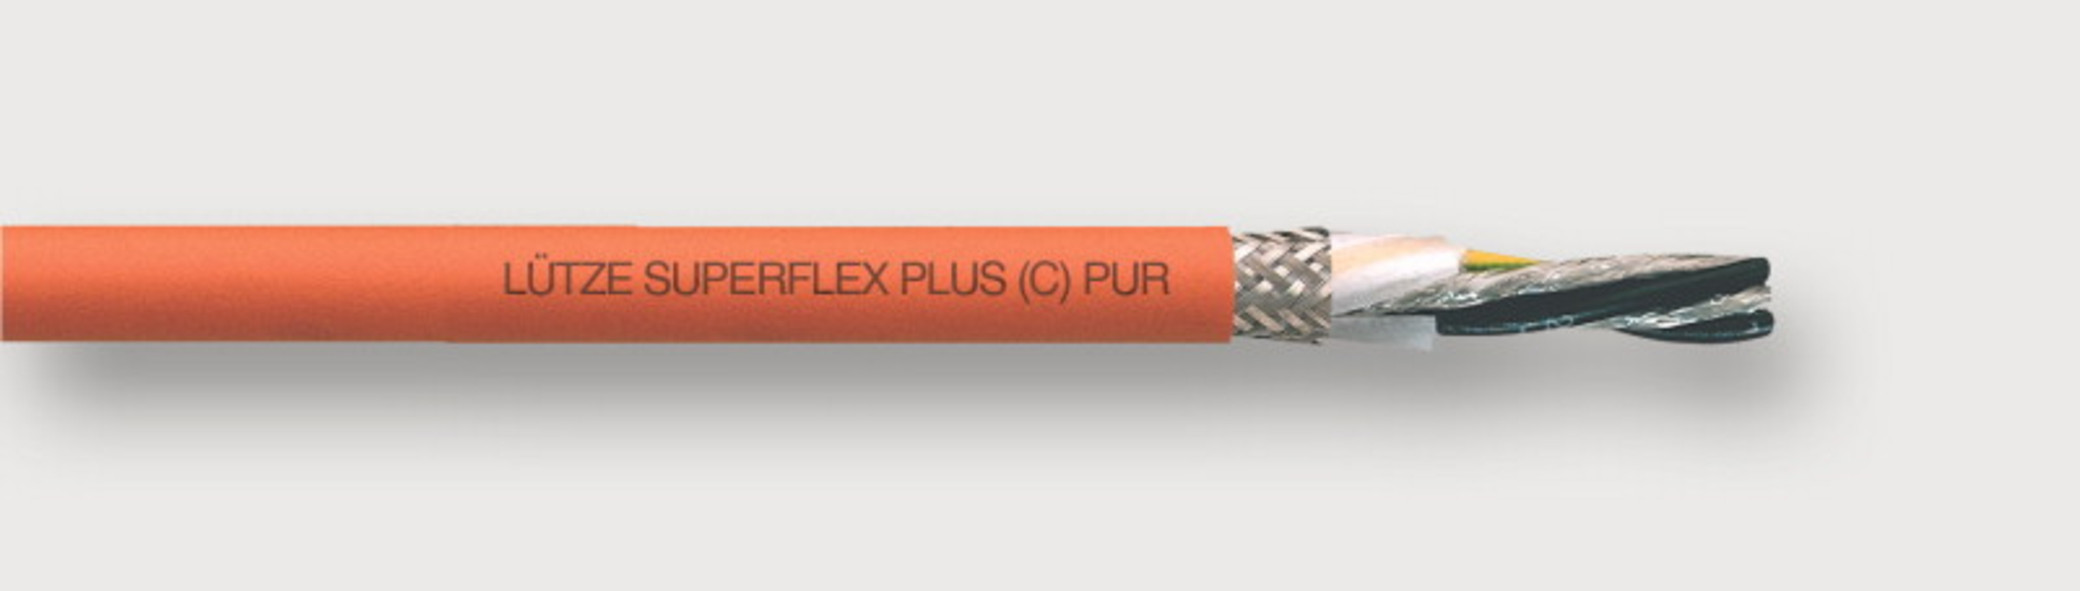 111762 - LÜTZE SUPERFLEX® PLUS M (C) PUR SERVO 0.6/1 kV Supply line for Bosch Rexroth and other systems For highest requirements